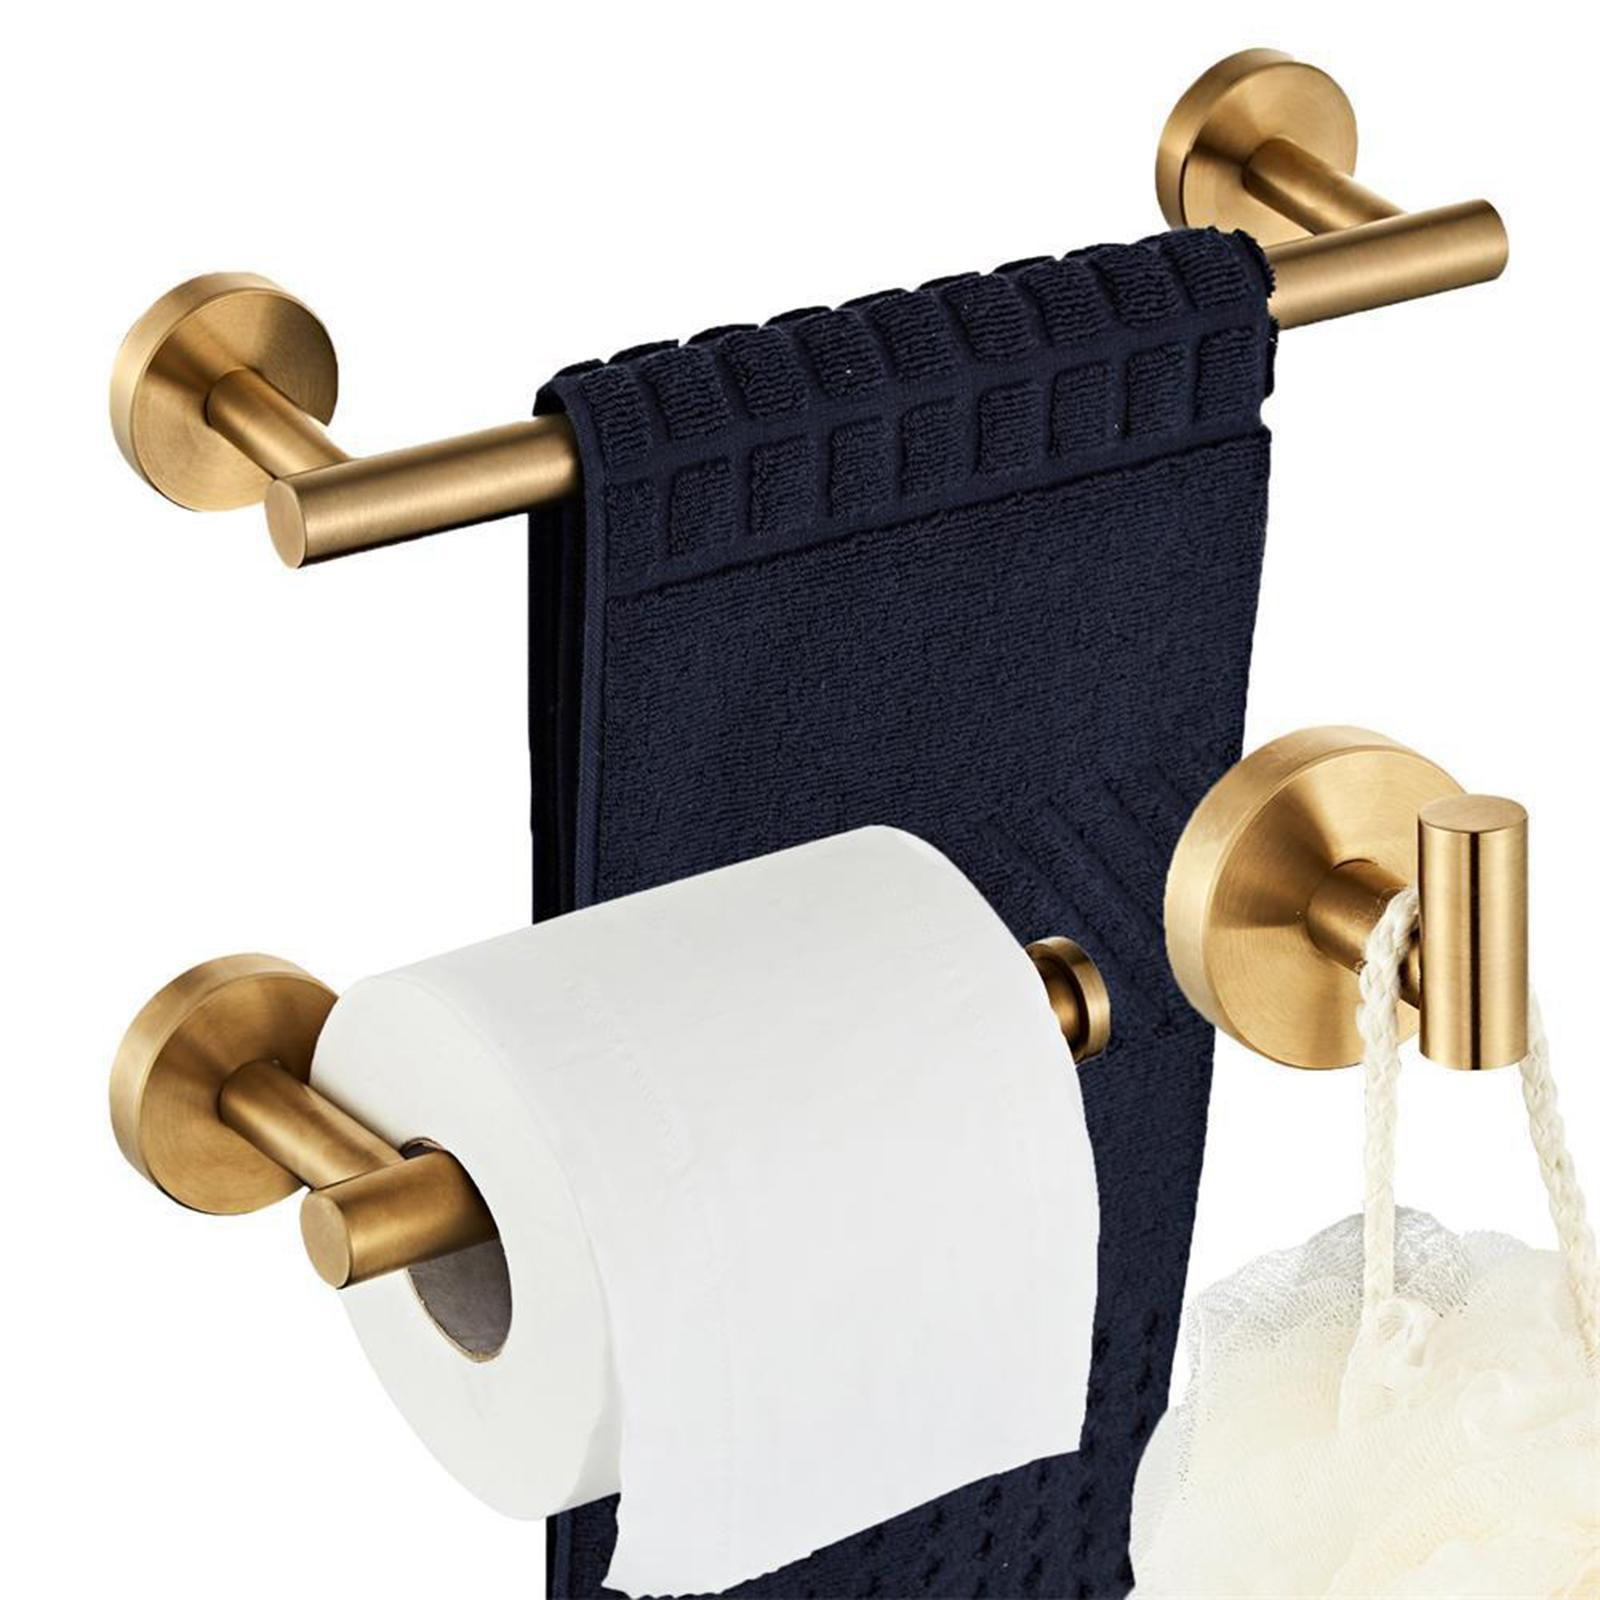 thumbnail 26 - 3x-Brushed-Robe-Hook-Toilet-Paper-Holder-12-034-Hand-Towel-Bar-Hardware-Set